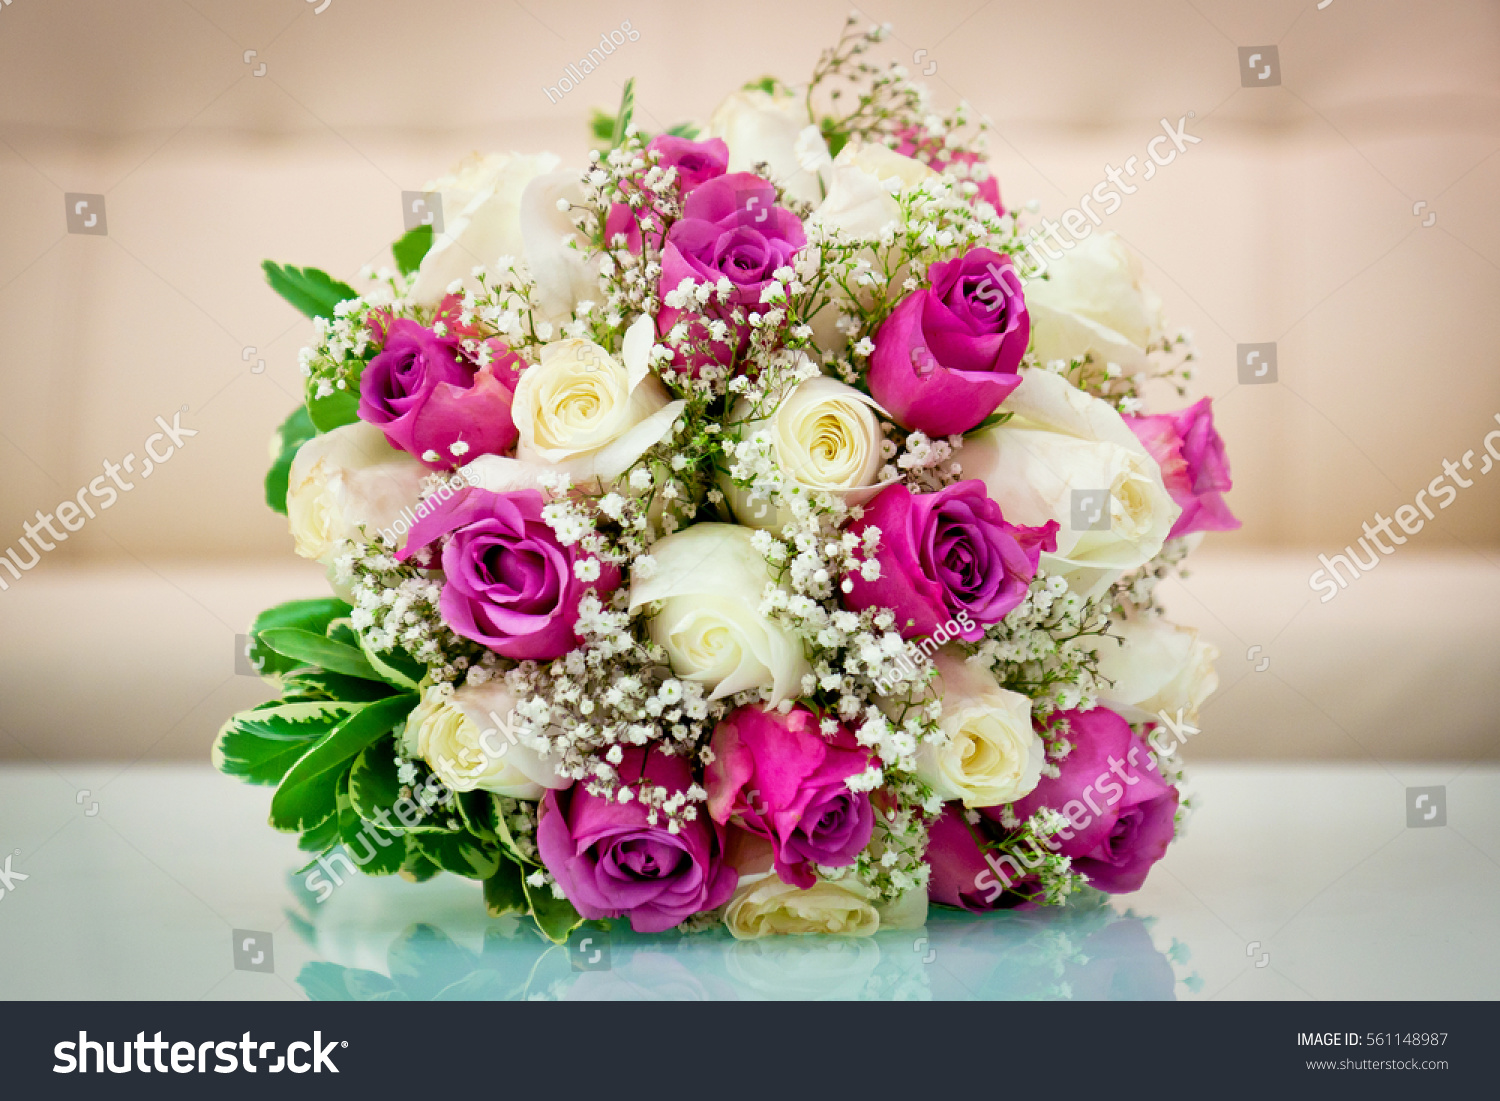 Closeup Of Brides Flowers On Wedding Day Are Pink And Purple Roses